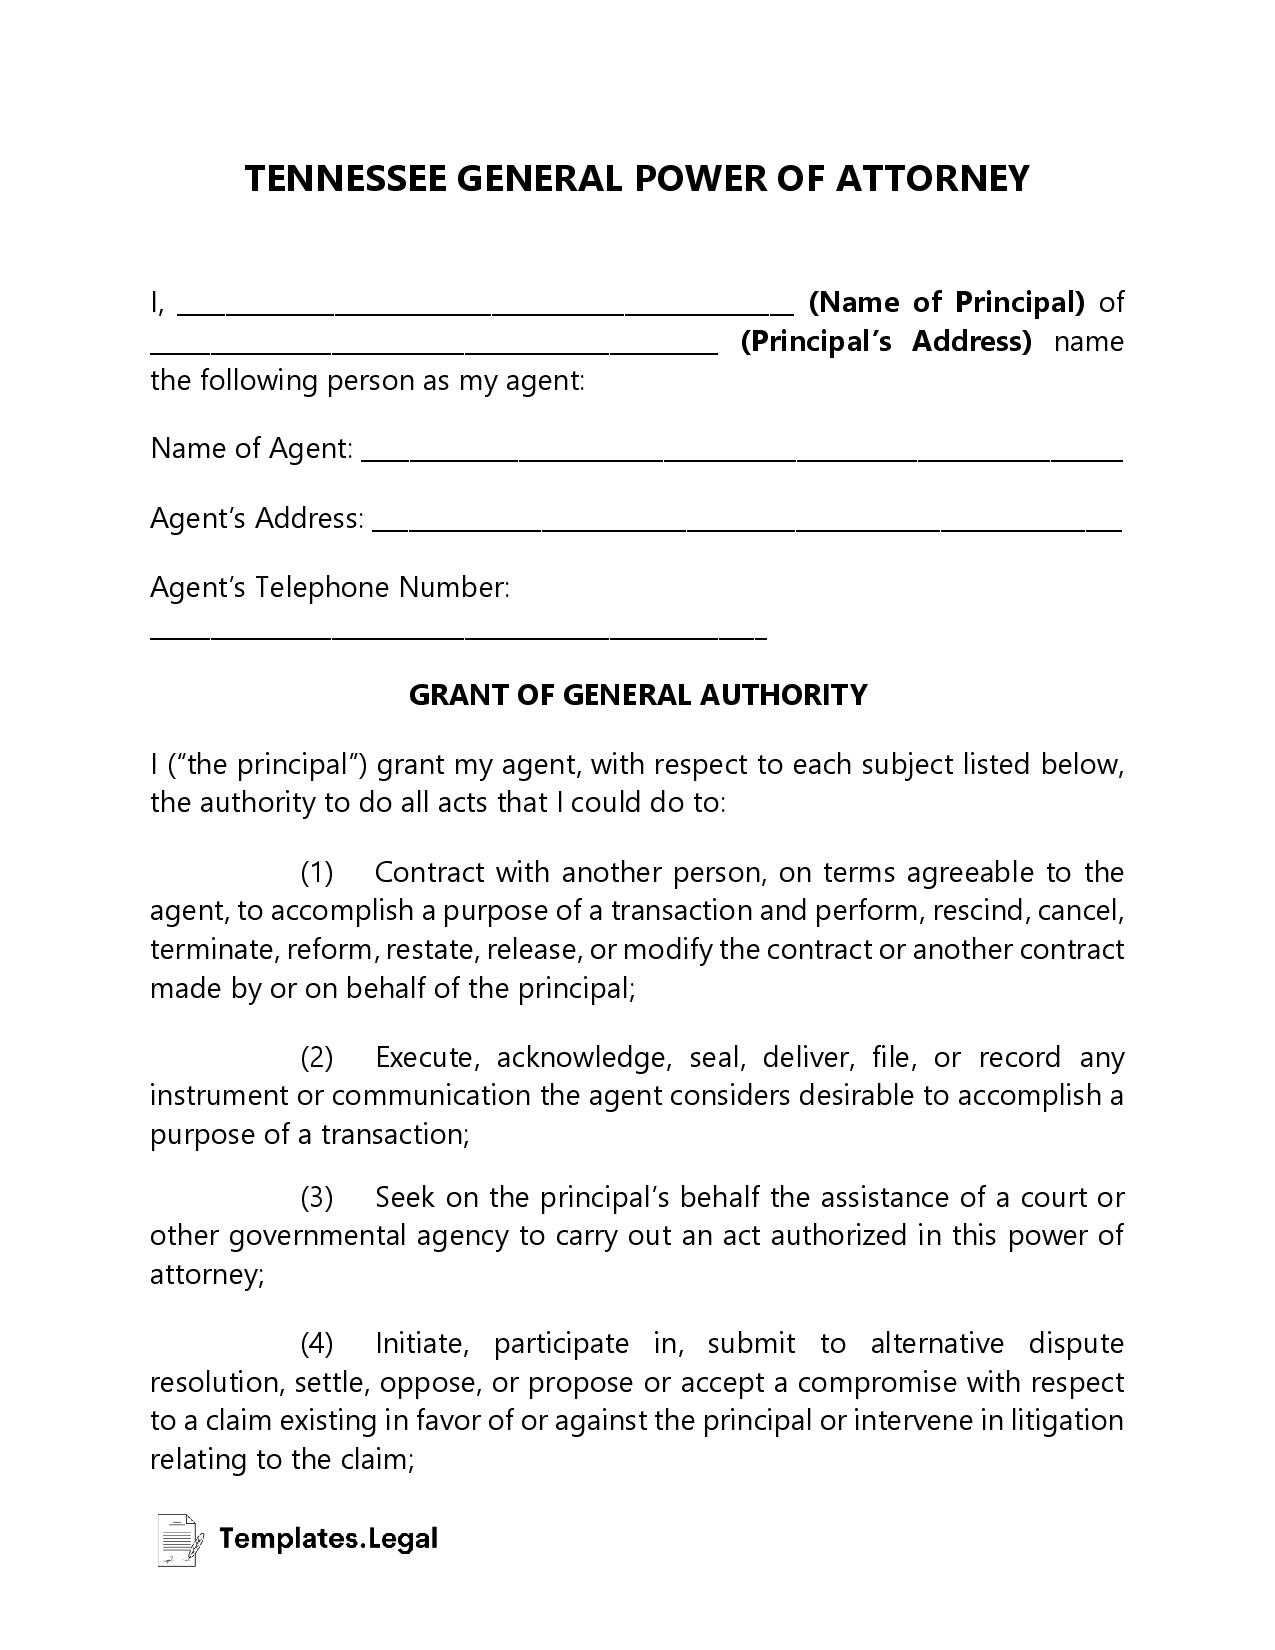 Tennessee General Power of Attorney - Templates.Legal